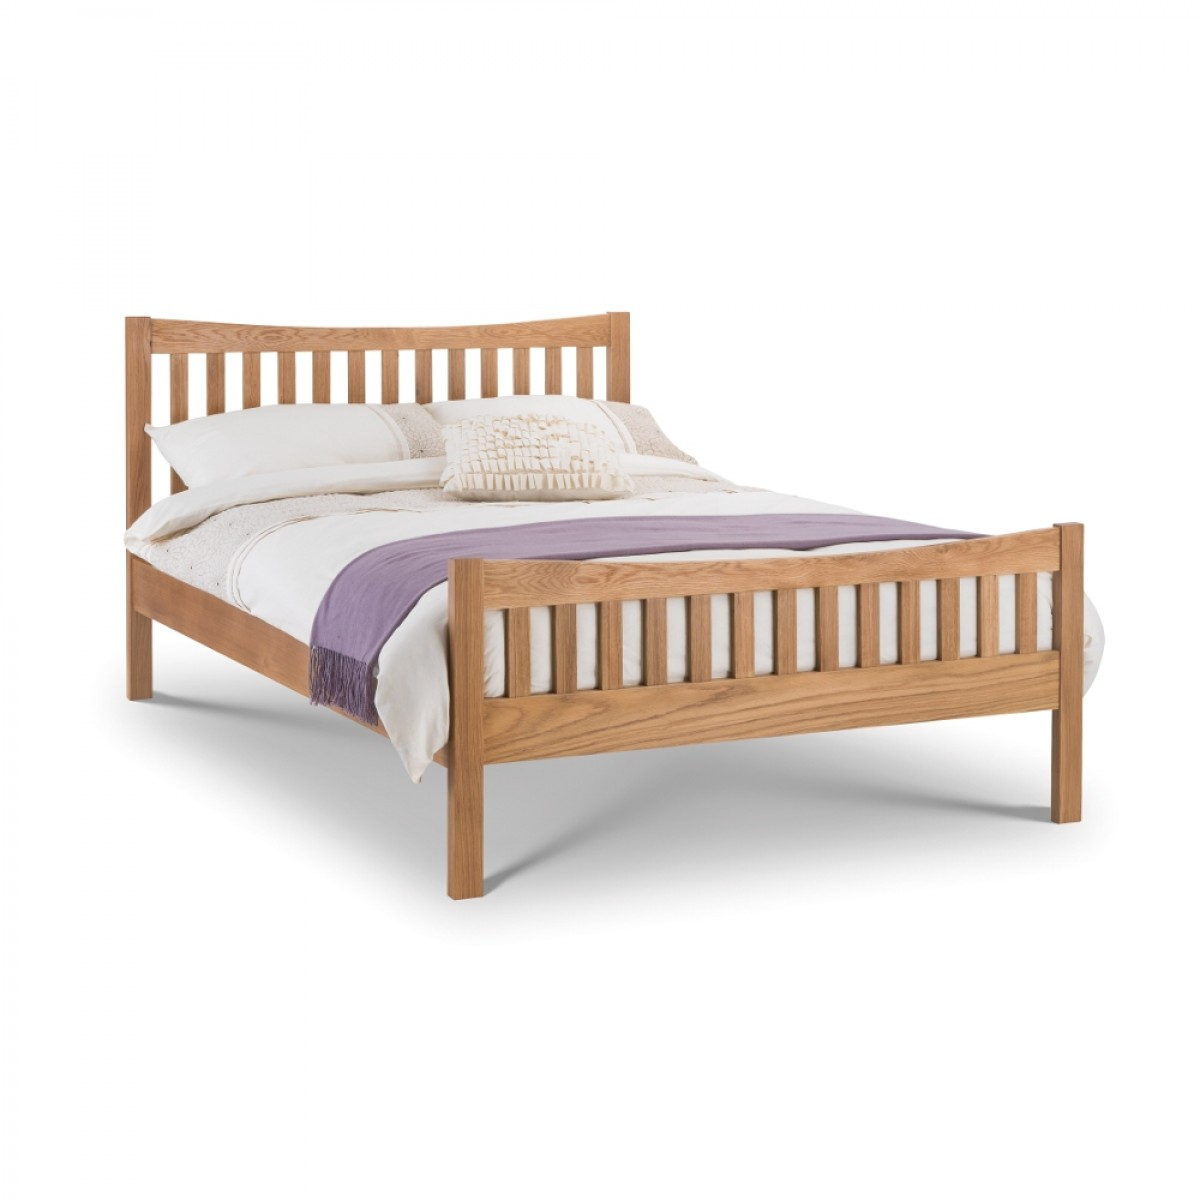 Bergamo Solid Oak Wooden Bed